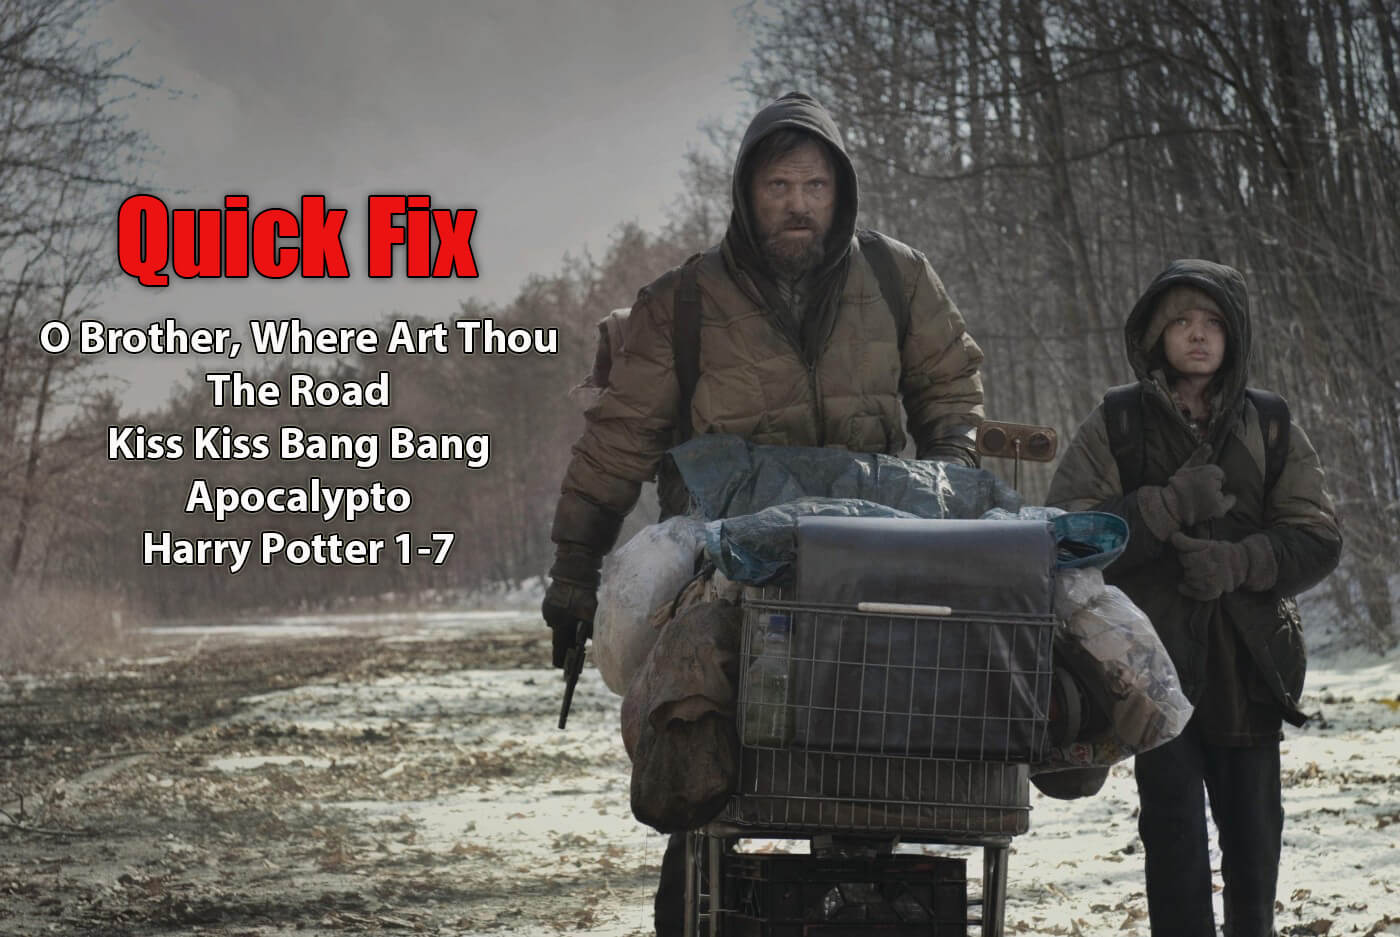 quick fix movies to watch 96-100 header image